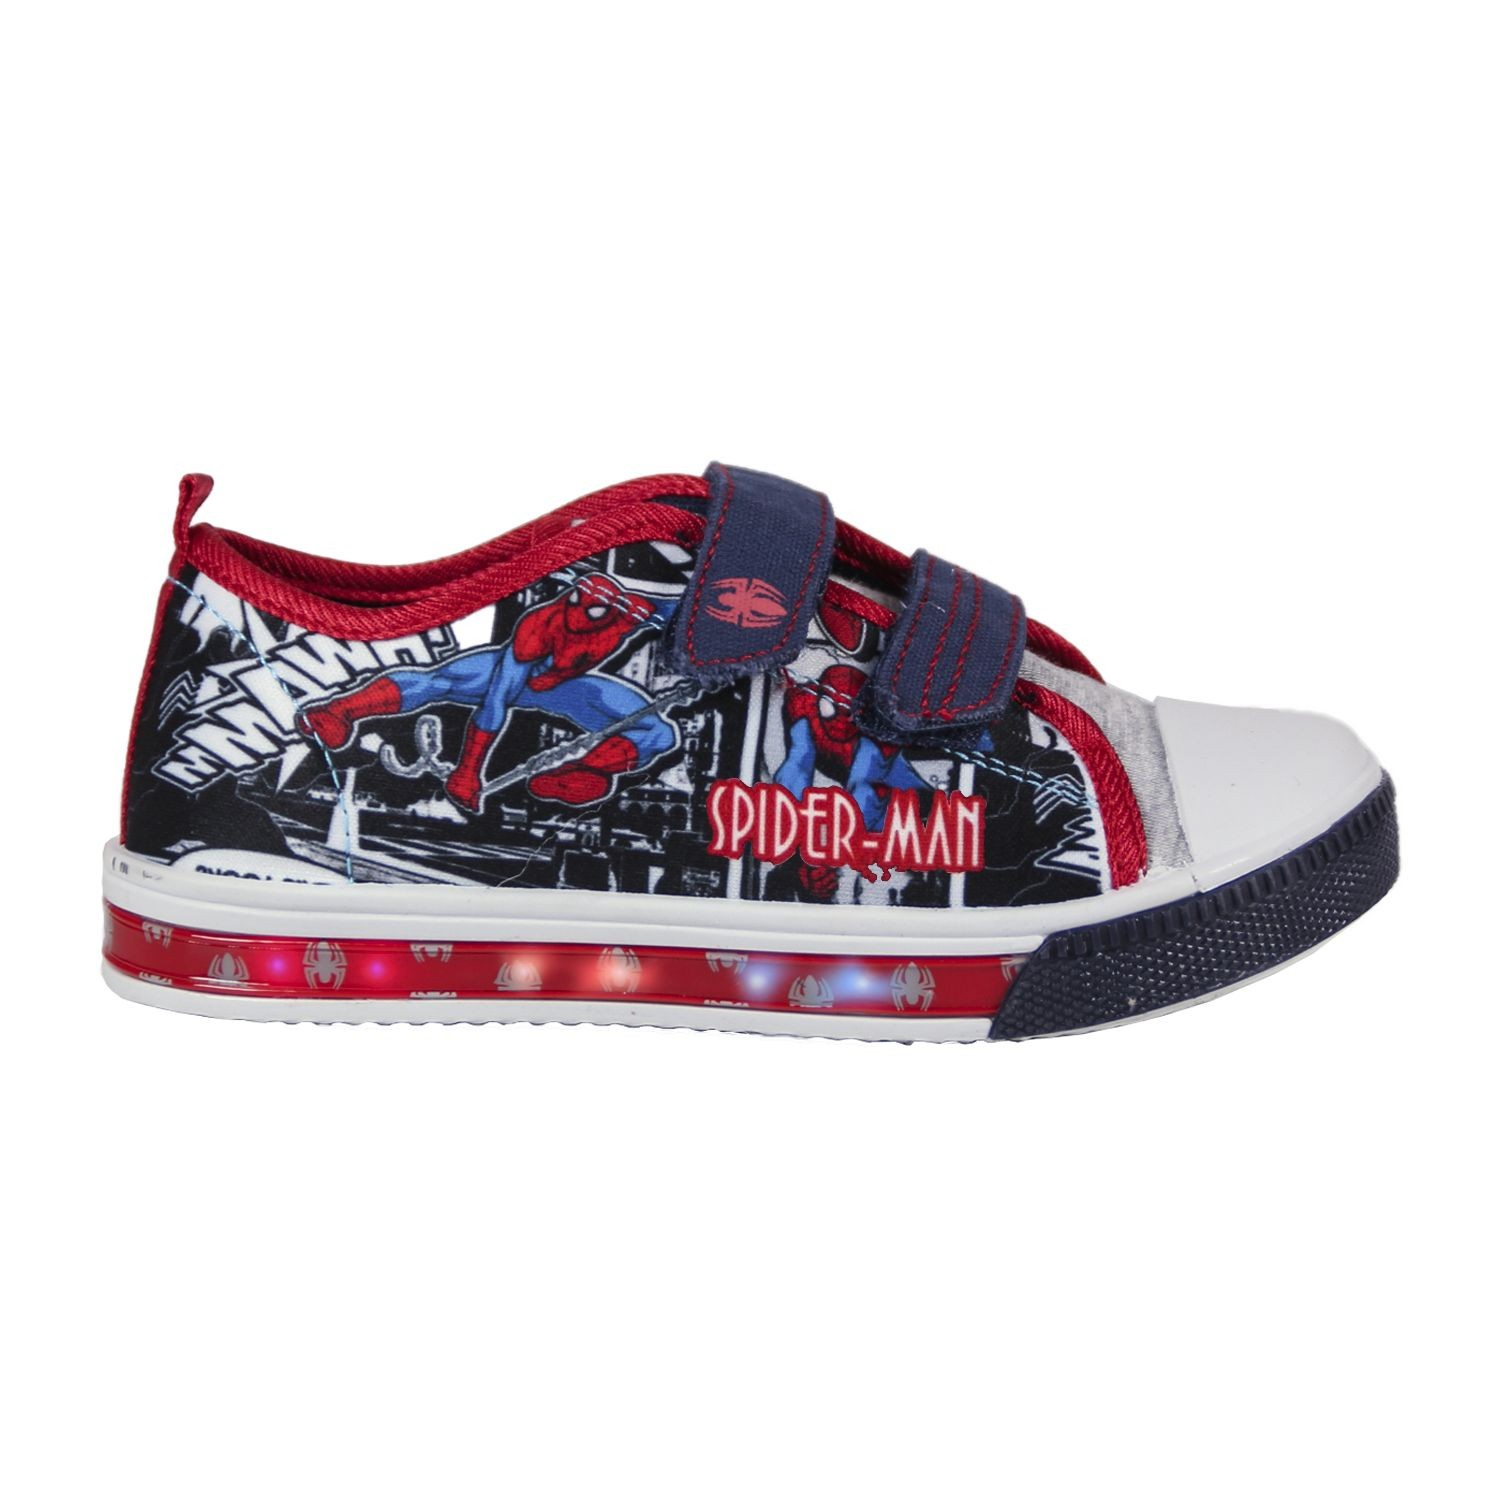 Baskets Spiderman Chaussures Lumineux Baskets Spiderman Chaussures Led Baskets Lumineux Led 6y7gbf